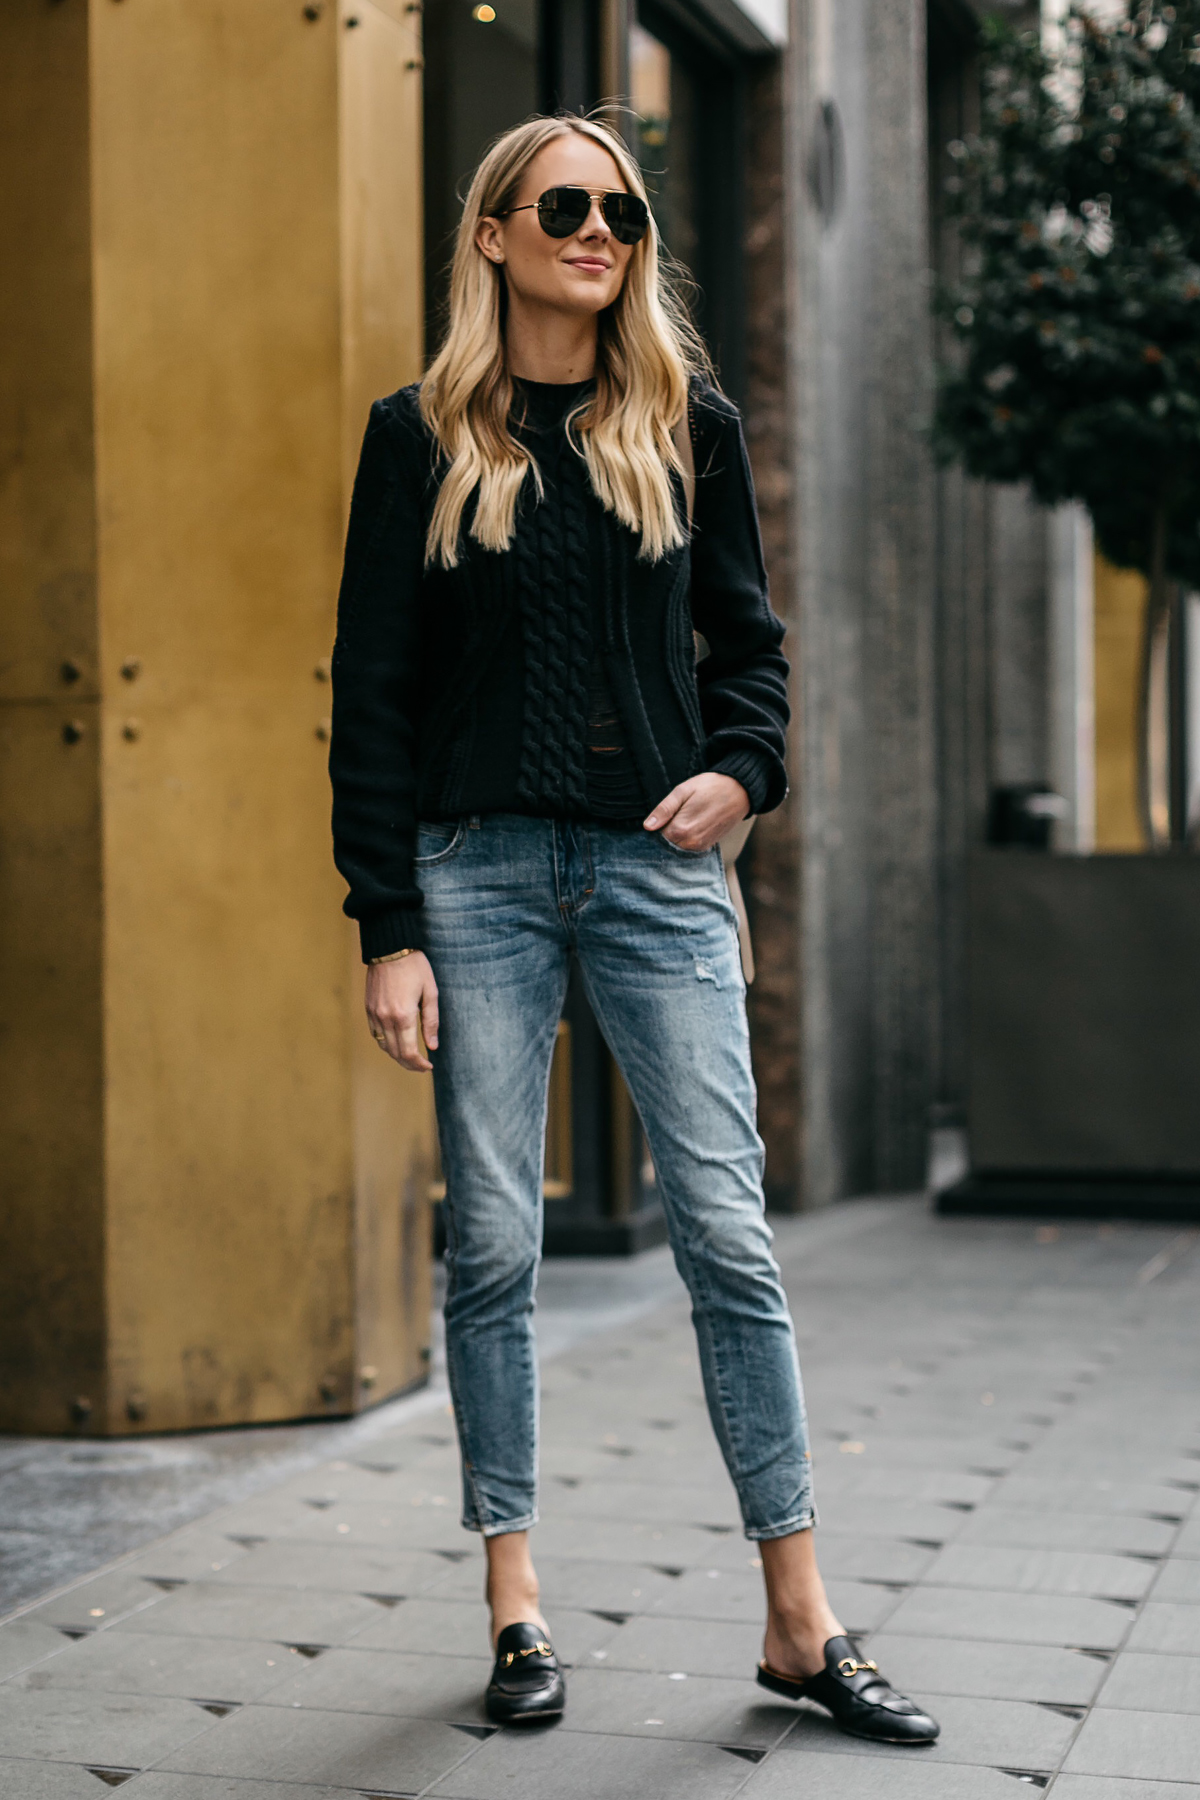 Blonde Woman Wearing Black Sweater Denim Jeans Outfit Frame Black Cable Knit Sweater Denim Split Hem Skinny Jeans Gucci Loafer Mules Celine Aviator Sunglasses Fashion Jackson Dallas Blogger Fashion Blogger Street Style